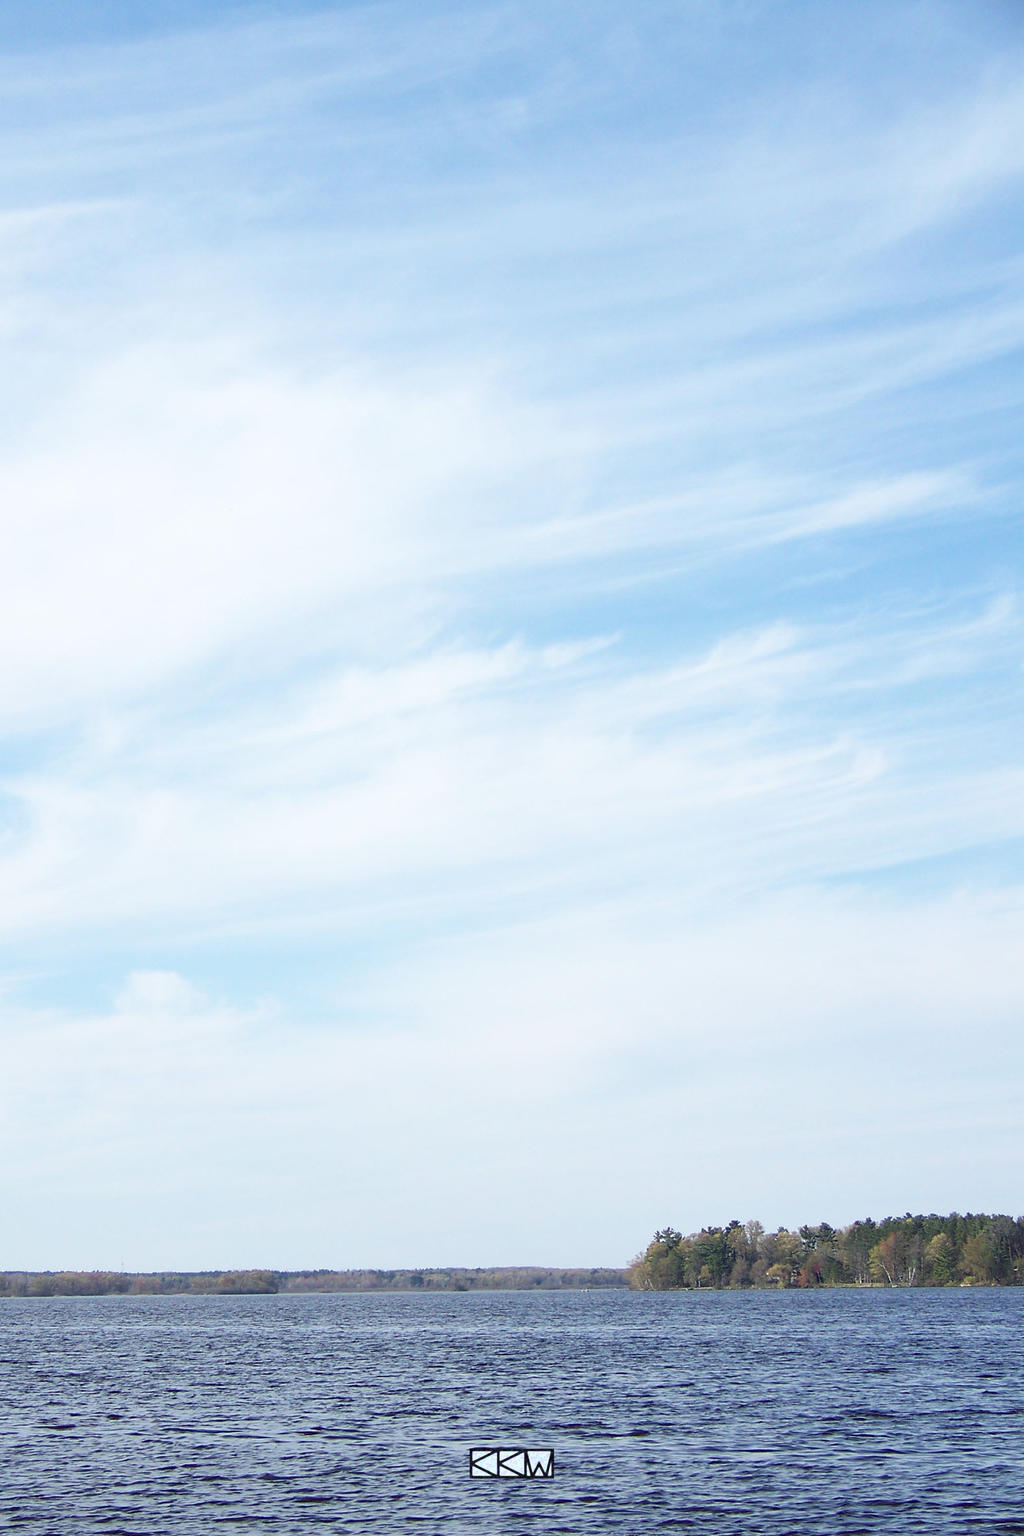 View ofthe WisconsinRiver around StPt 4/24/12 5:04 by Crigger